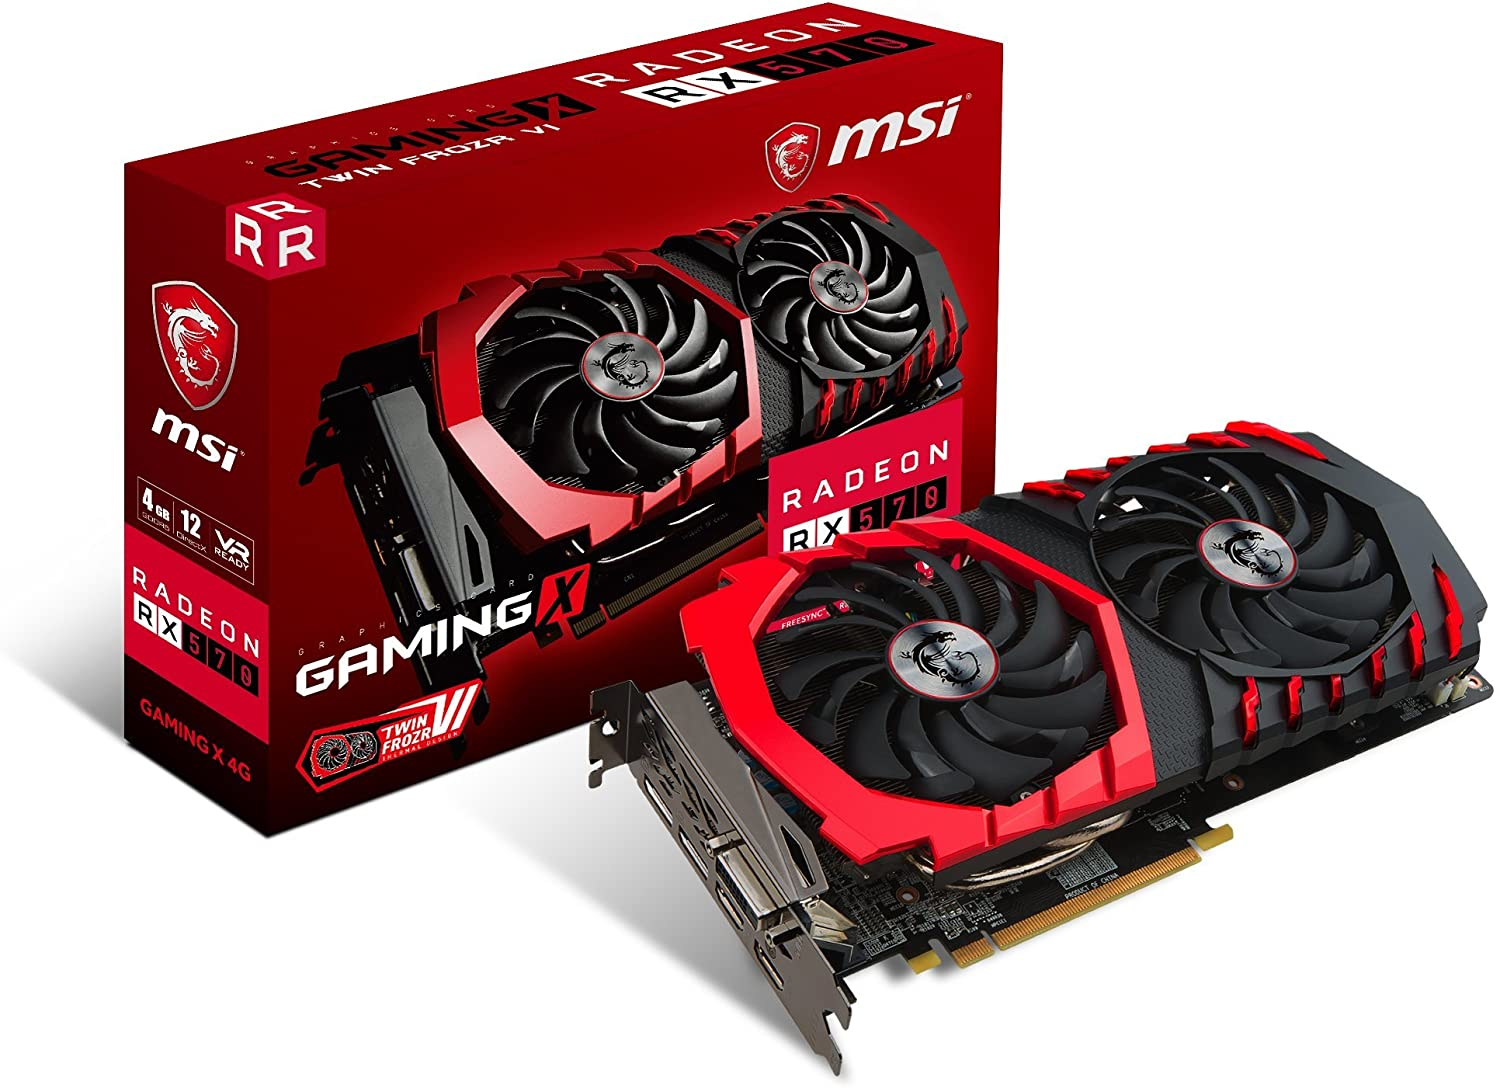 MSI Gaming Radeon RX 570 256-bit 4GB GDRR5 DirectX 12 VR Ready CFX Graphcis Card (RX 570 GAMING X 4G)